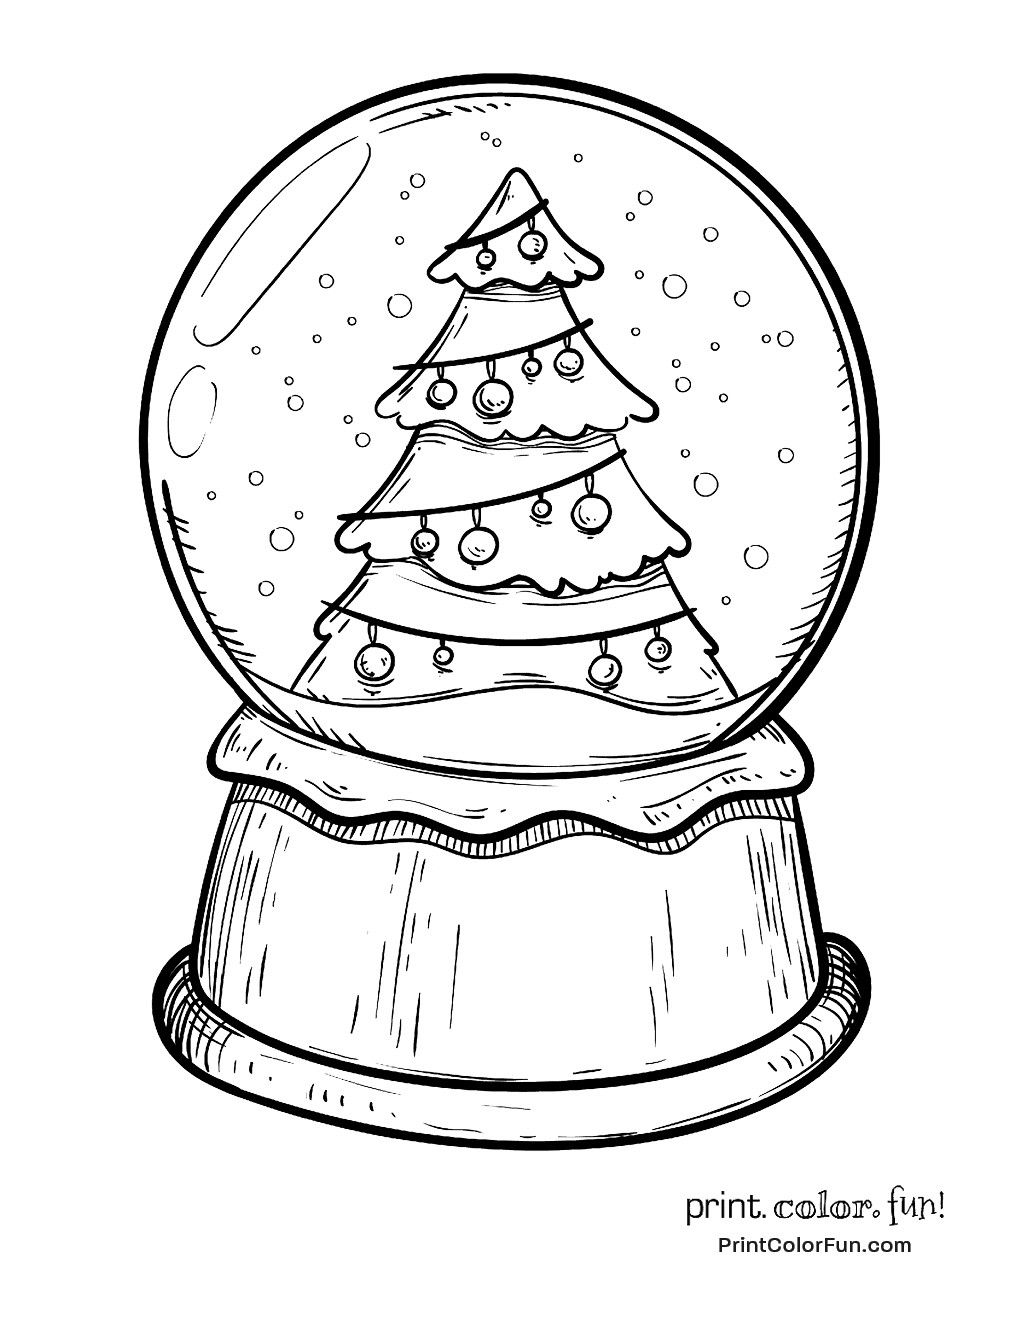 Printable Christmas Colouring Pages The Organised Housewife Christmas Tree Coloring Page Printable Christmas Coloring Pages Christmas Coloring Pages